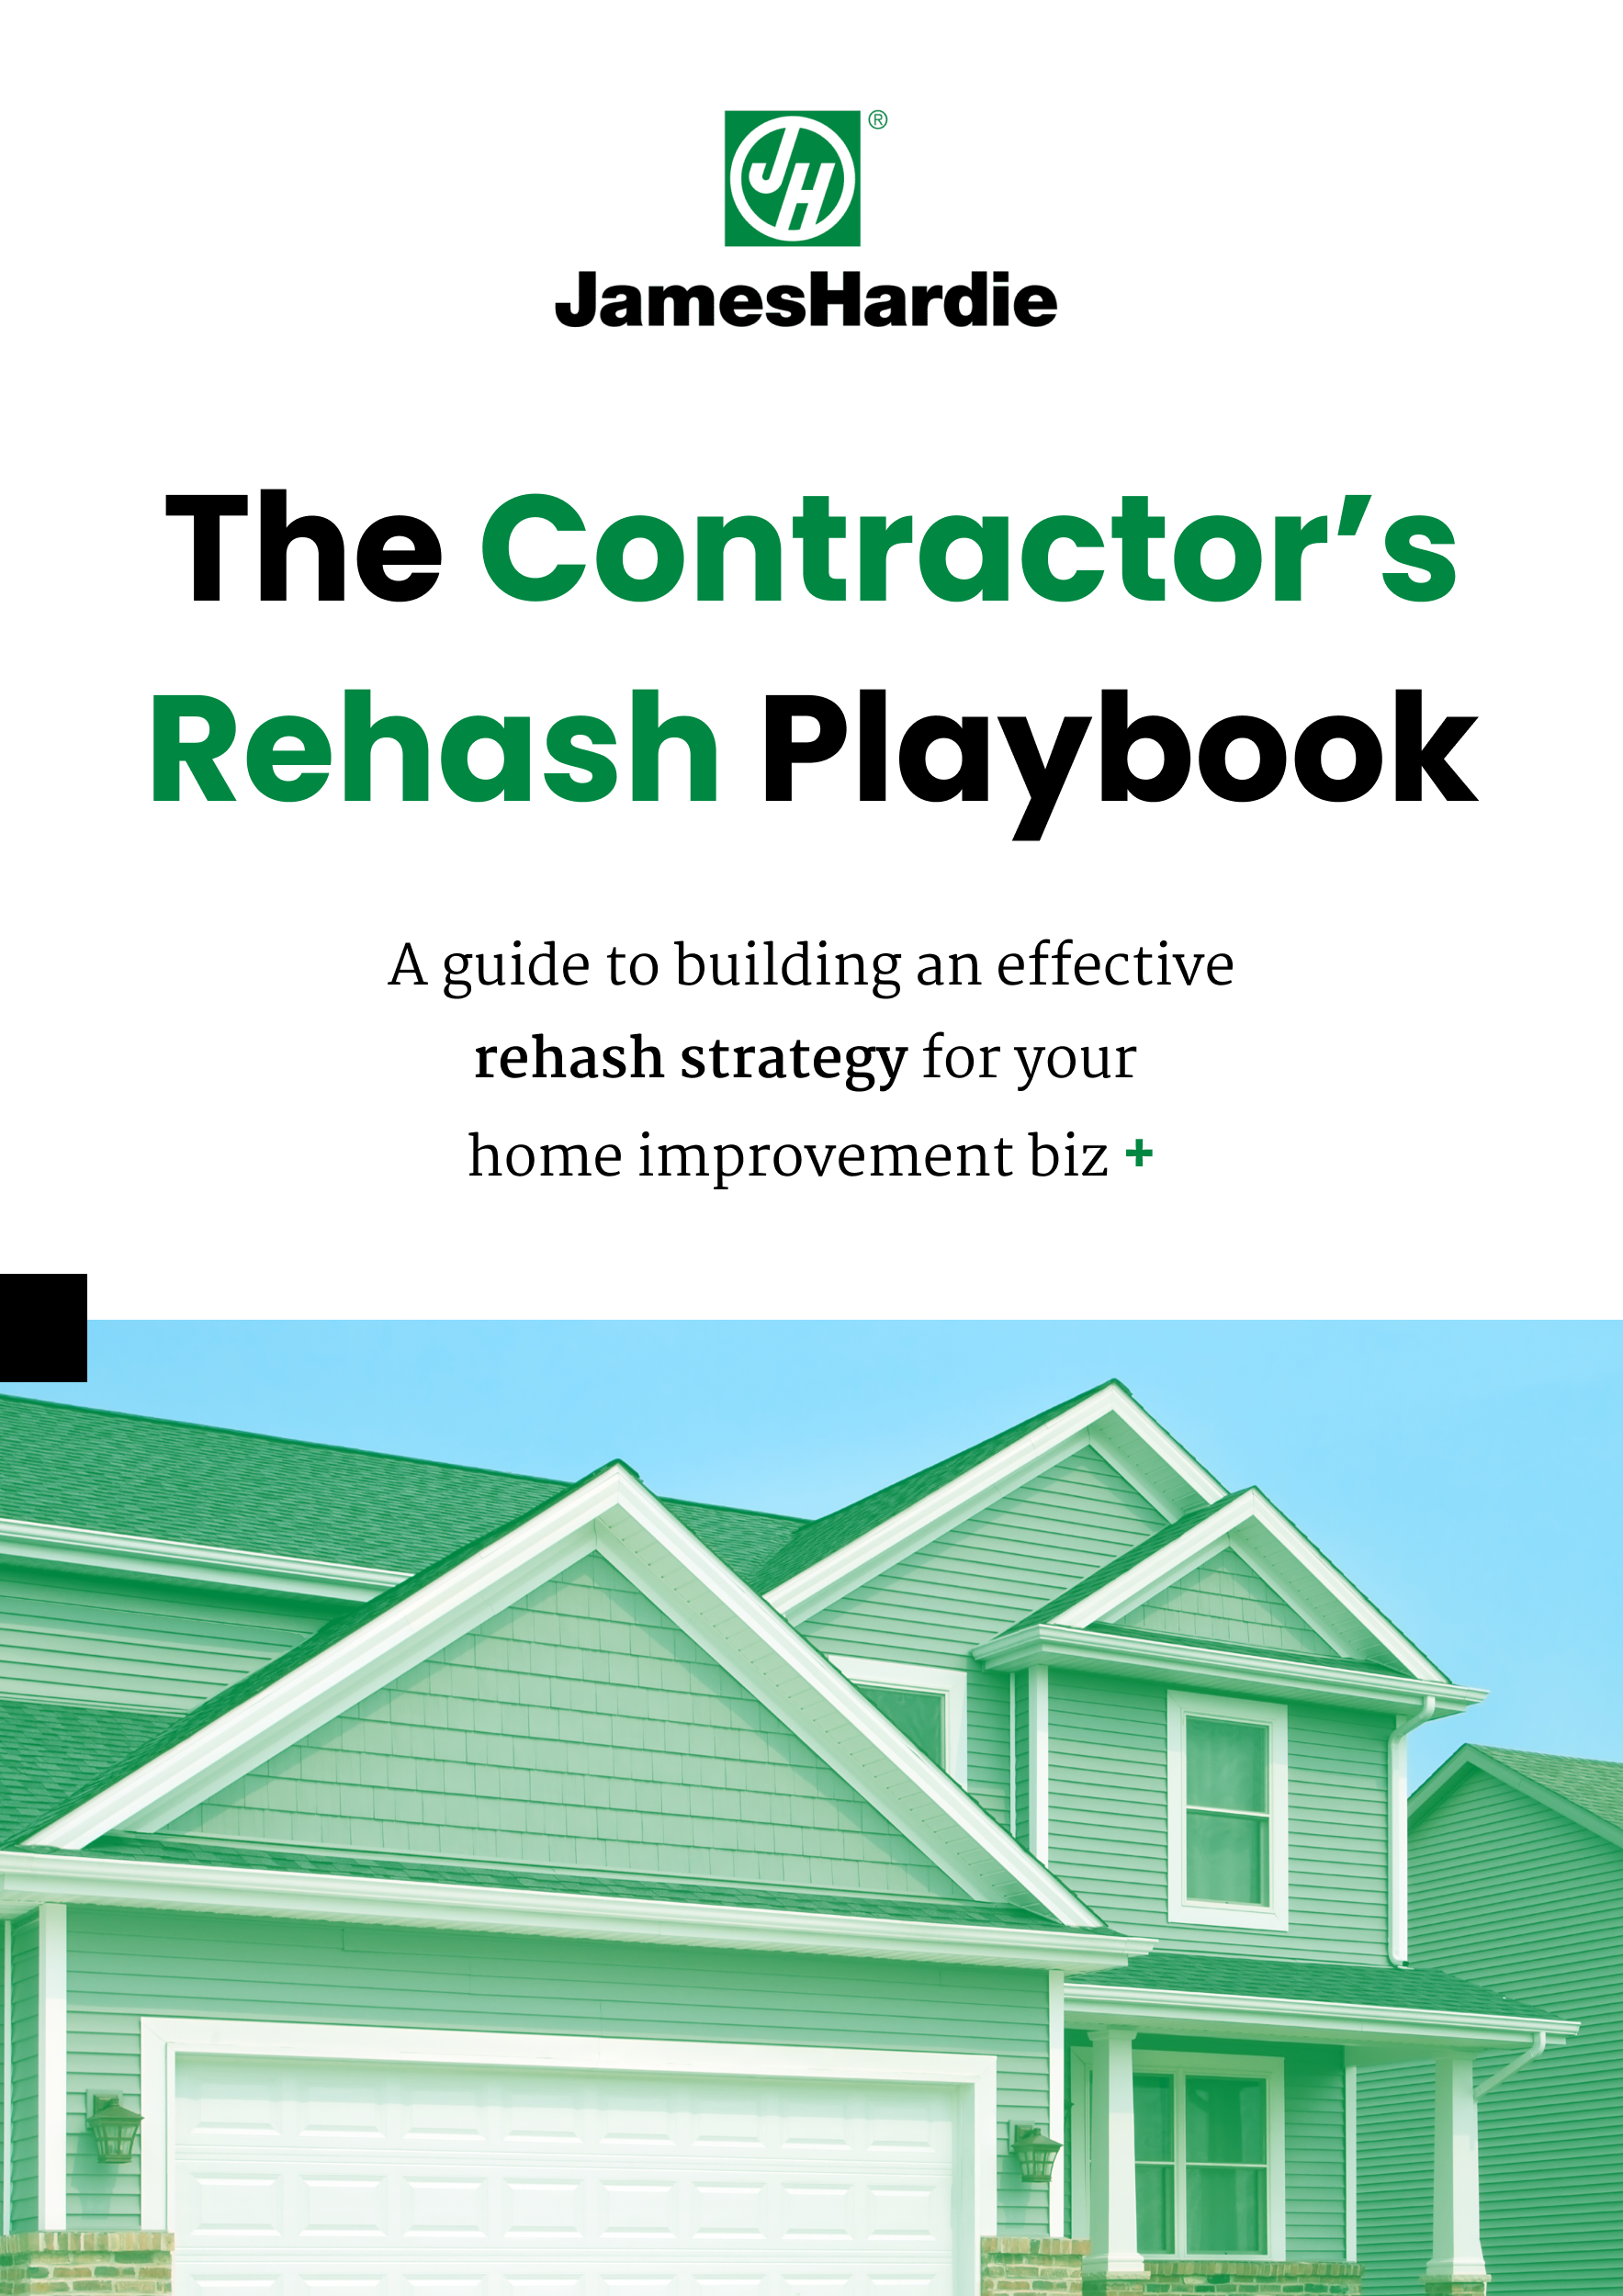 The Contractor's Rehash Playbook